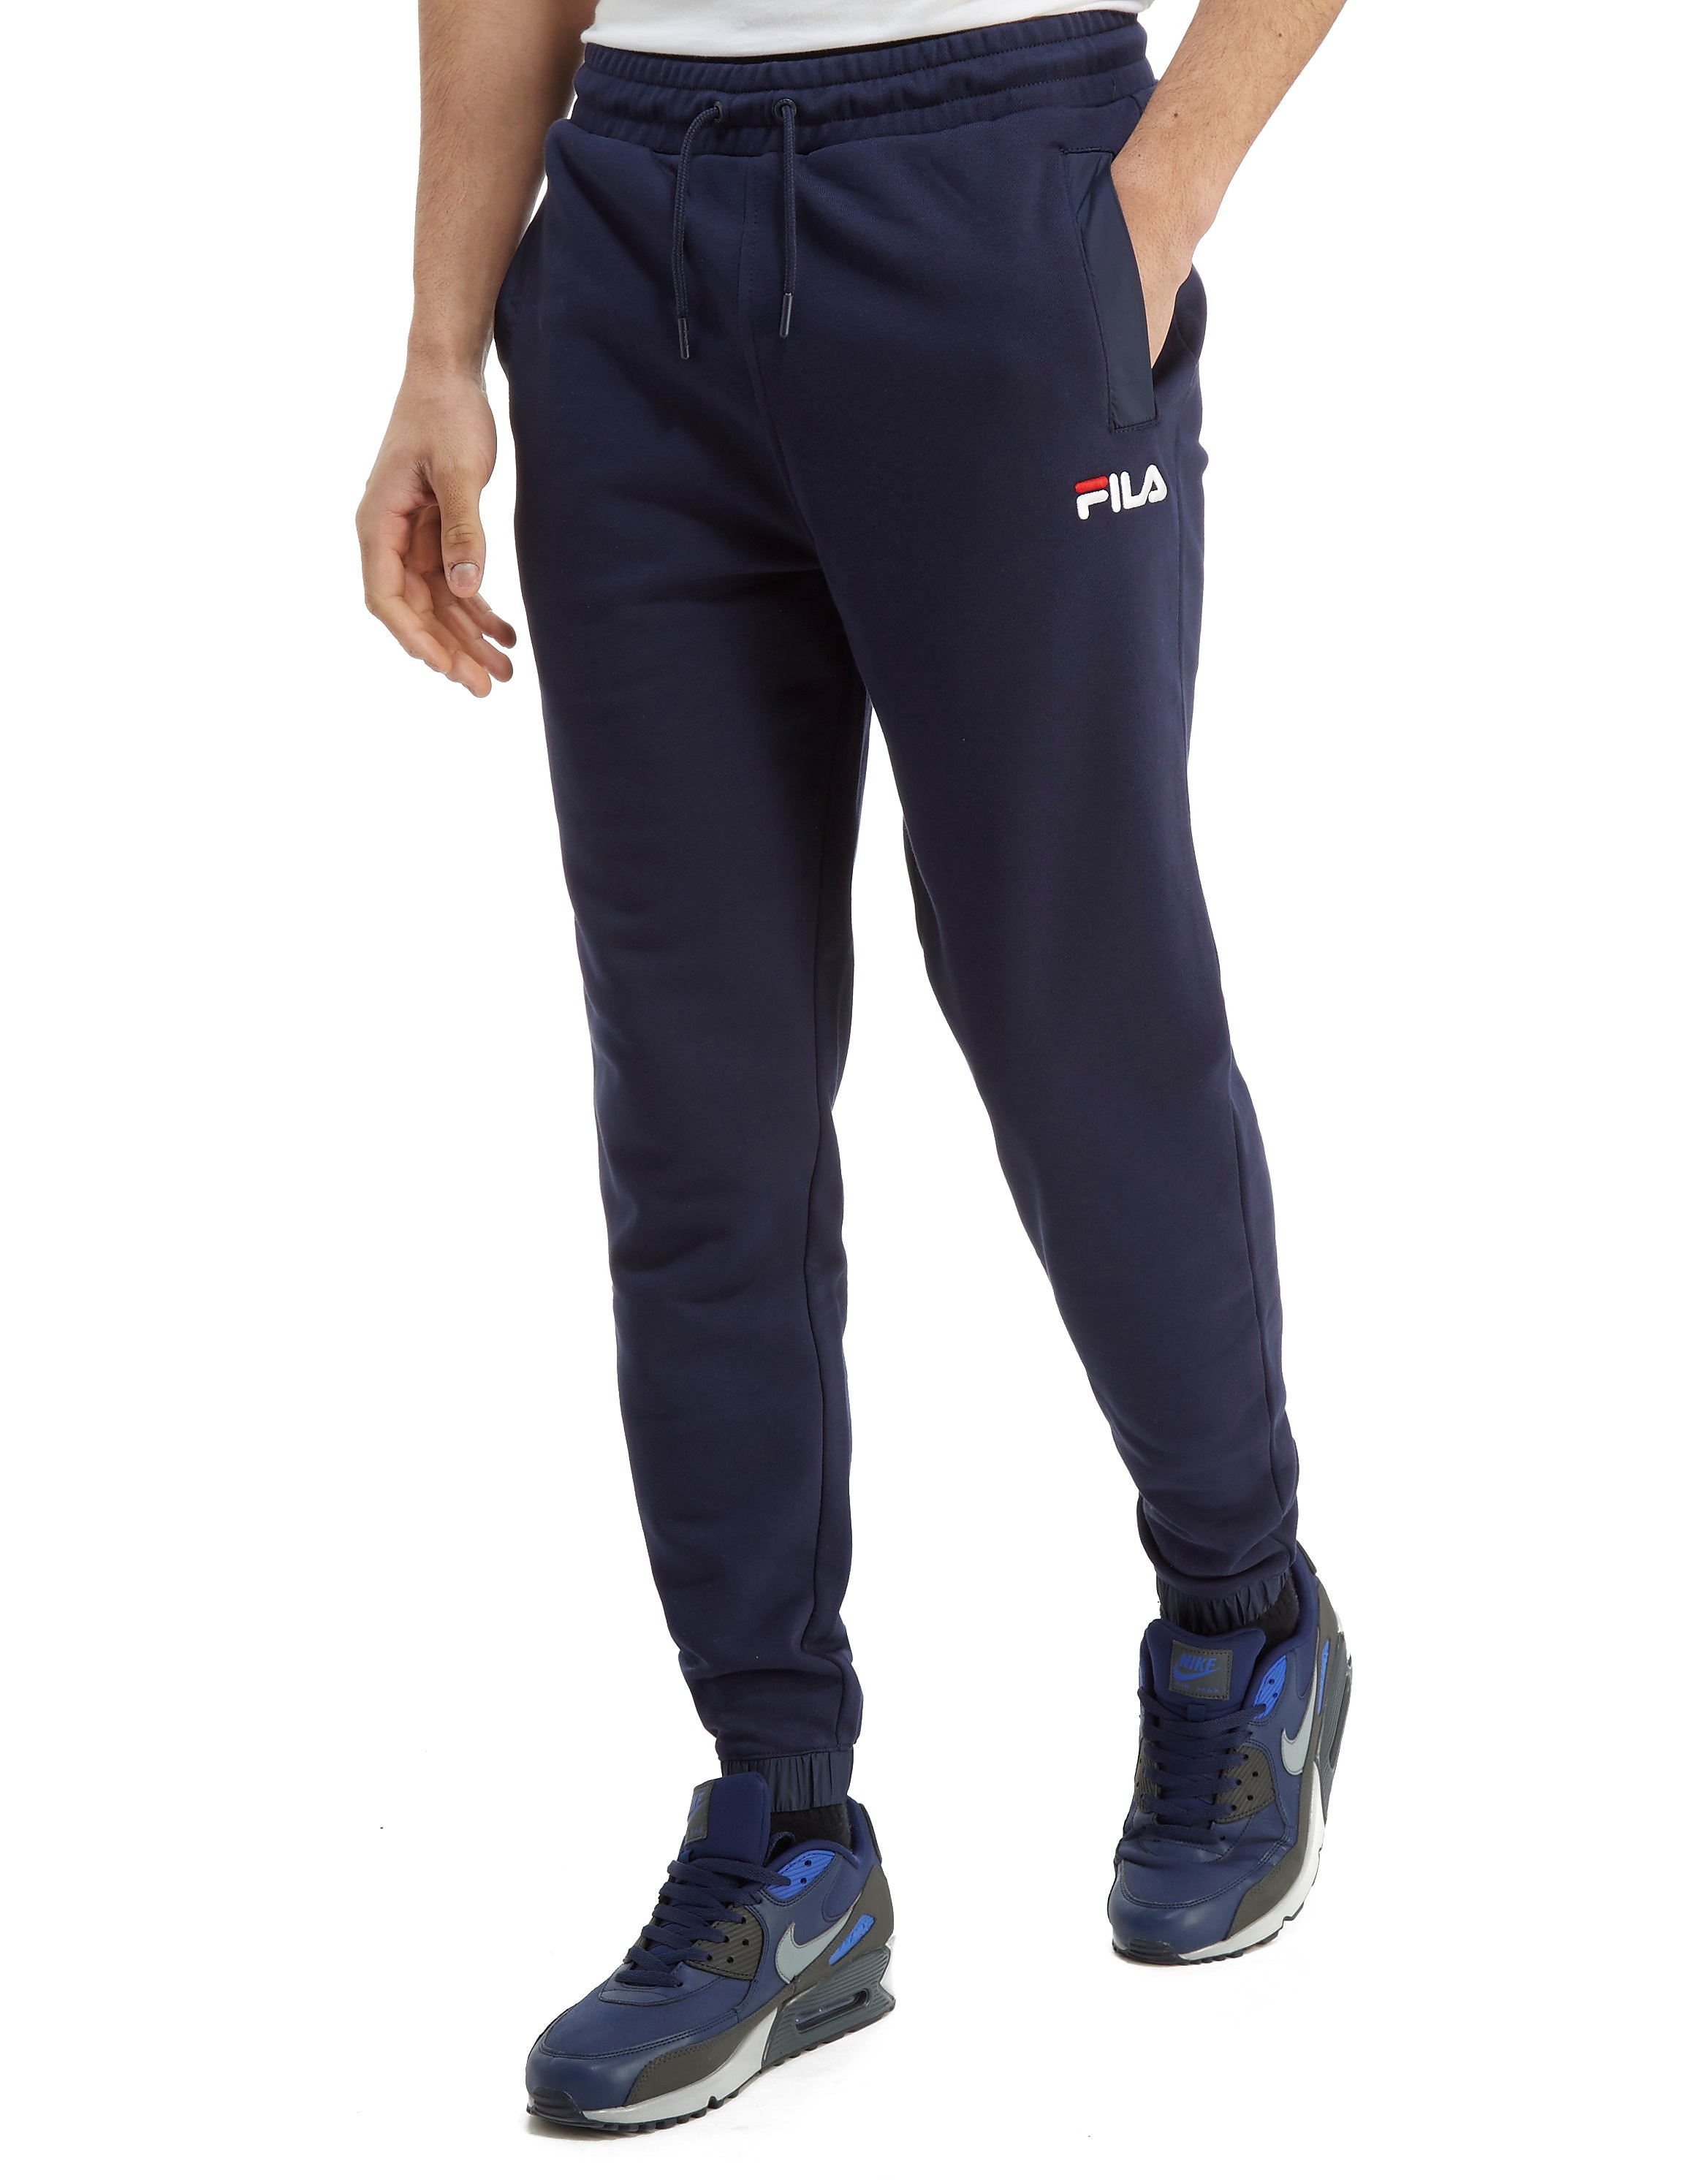 Fila Finn Fleece Pants